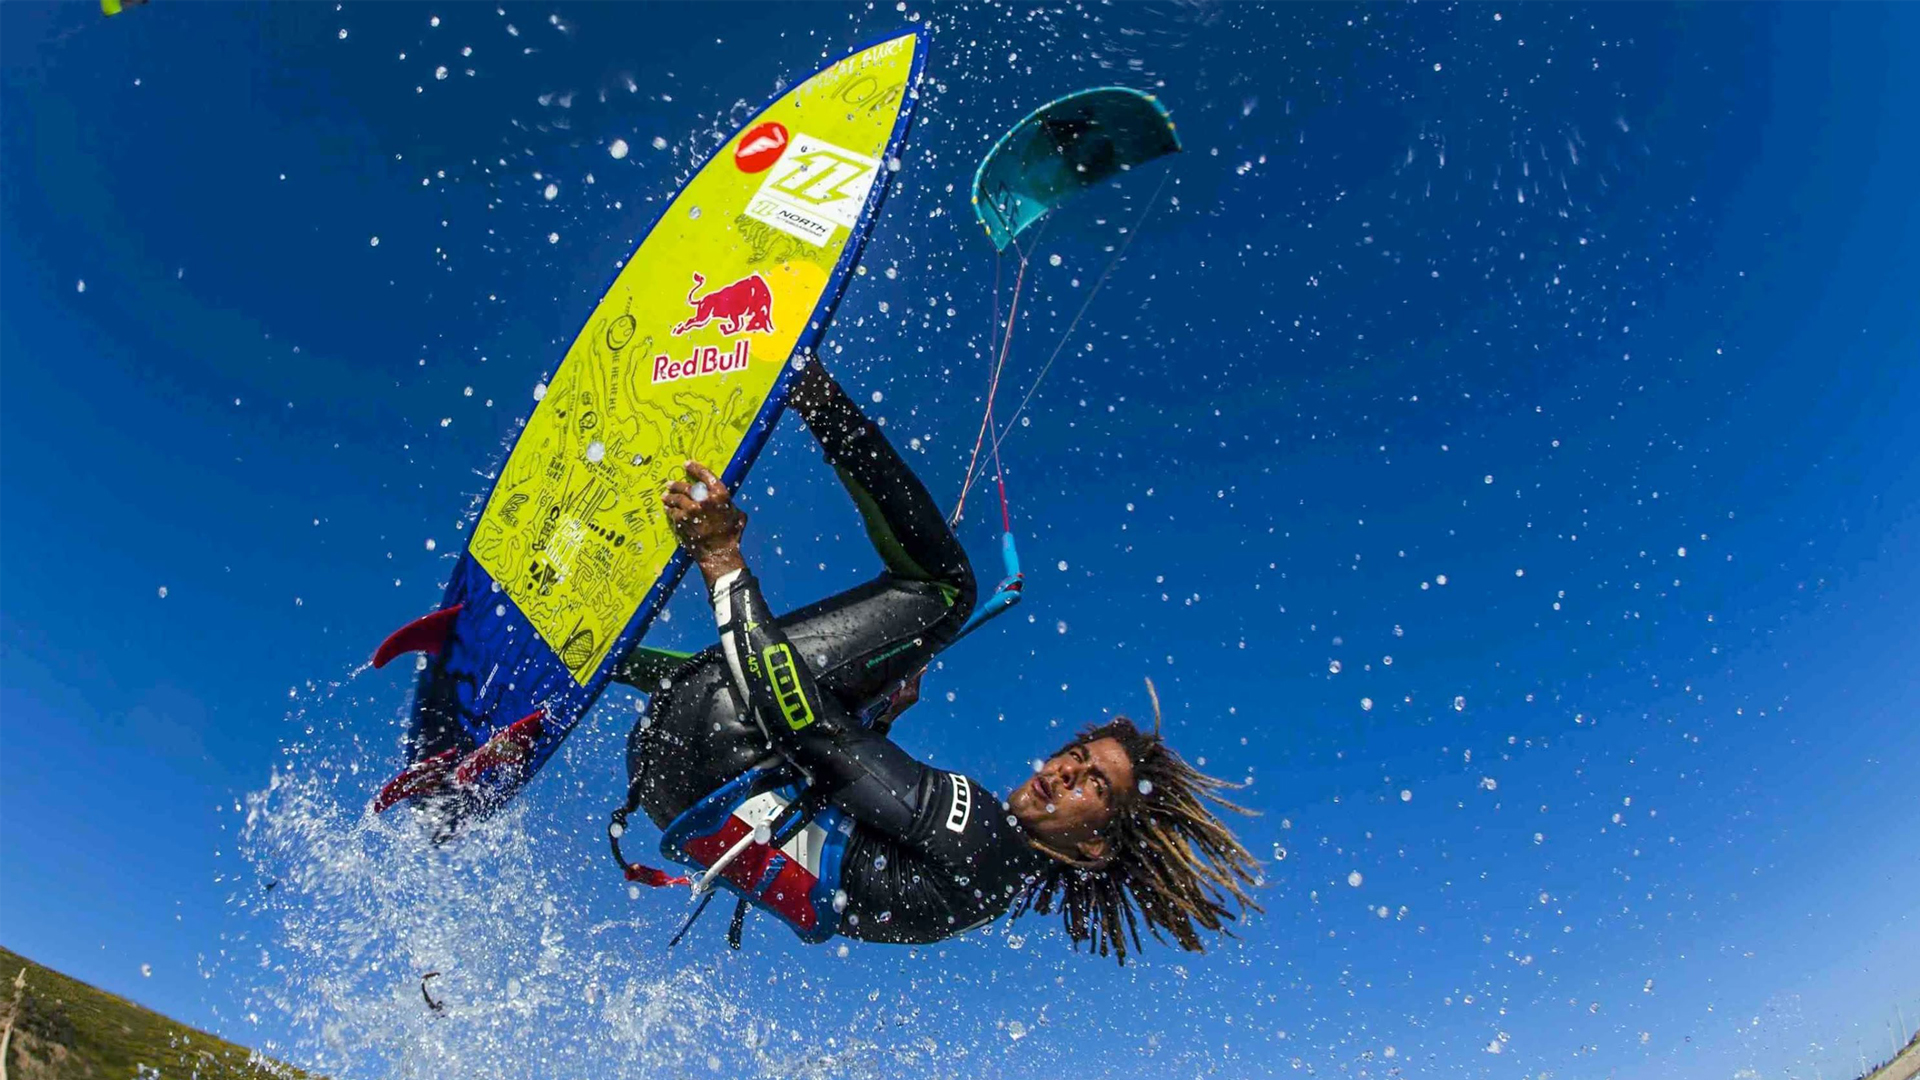 kitesurf wallpaper image - Airton Cozzolino with a strapless arial - North kiteboarding - in resolution: High Definition - HD 16:9 1920 X 1080